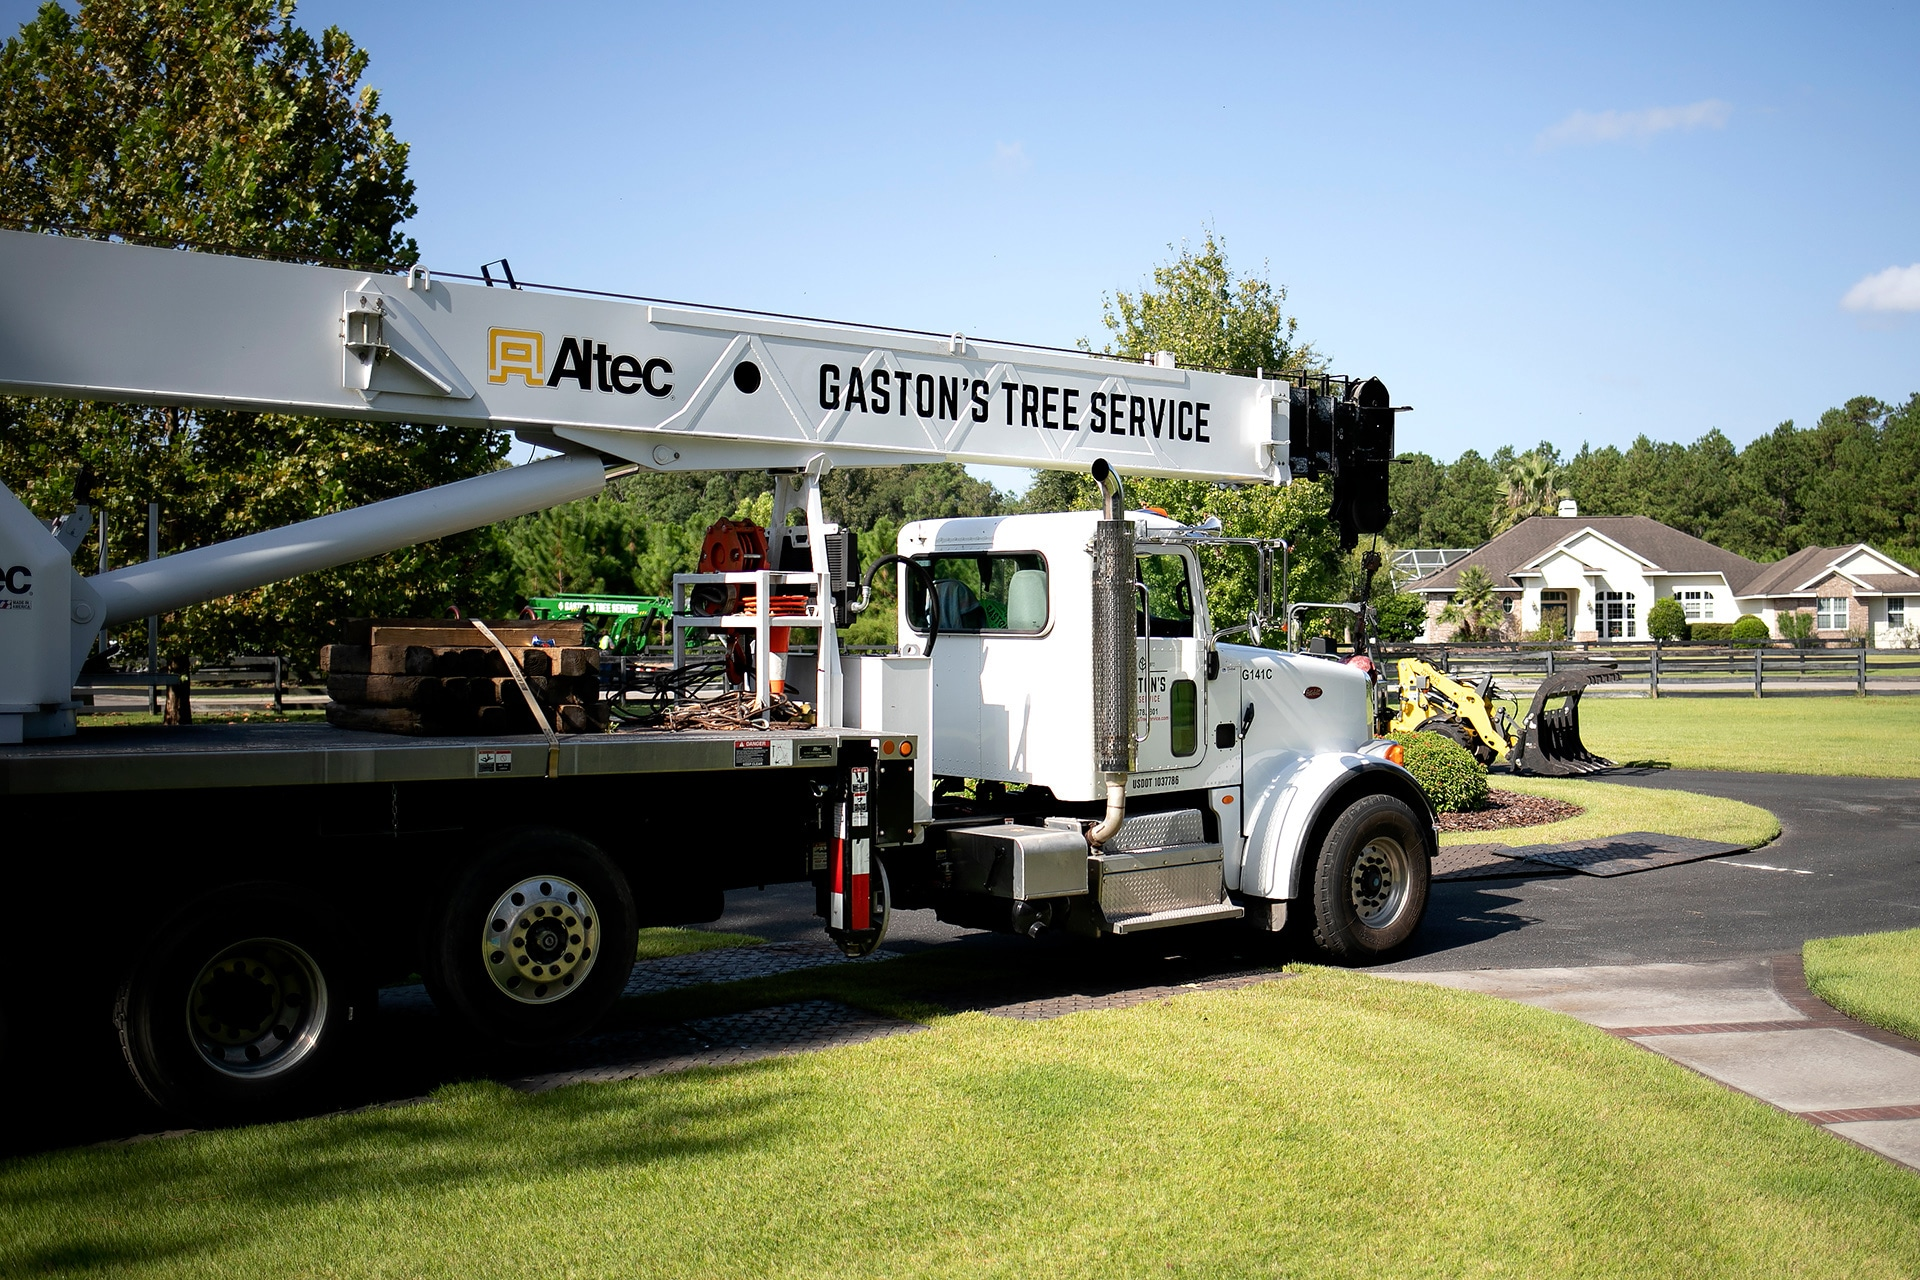 A truck for Gaston's Tree Service